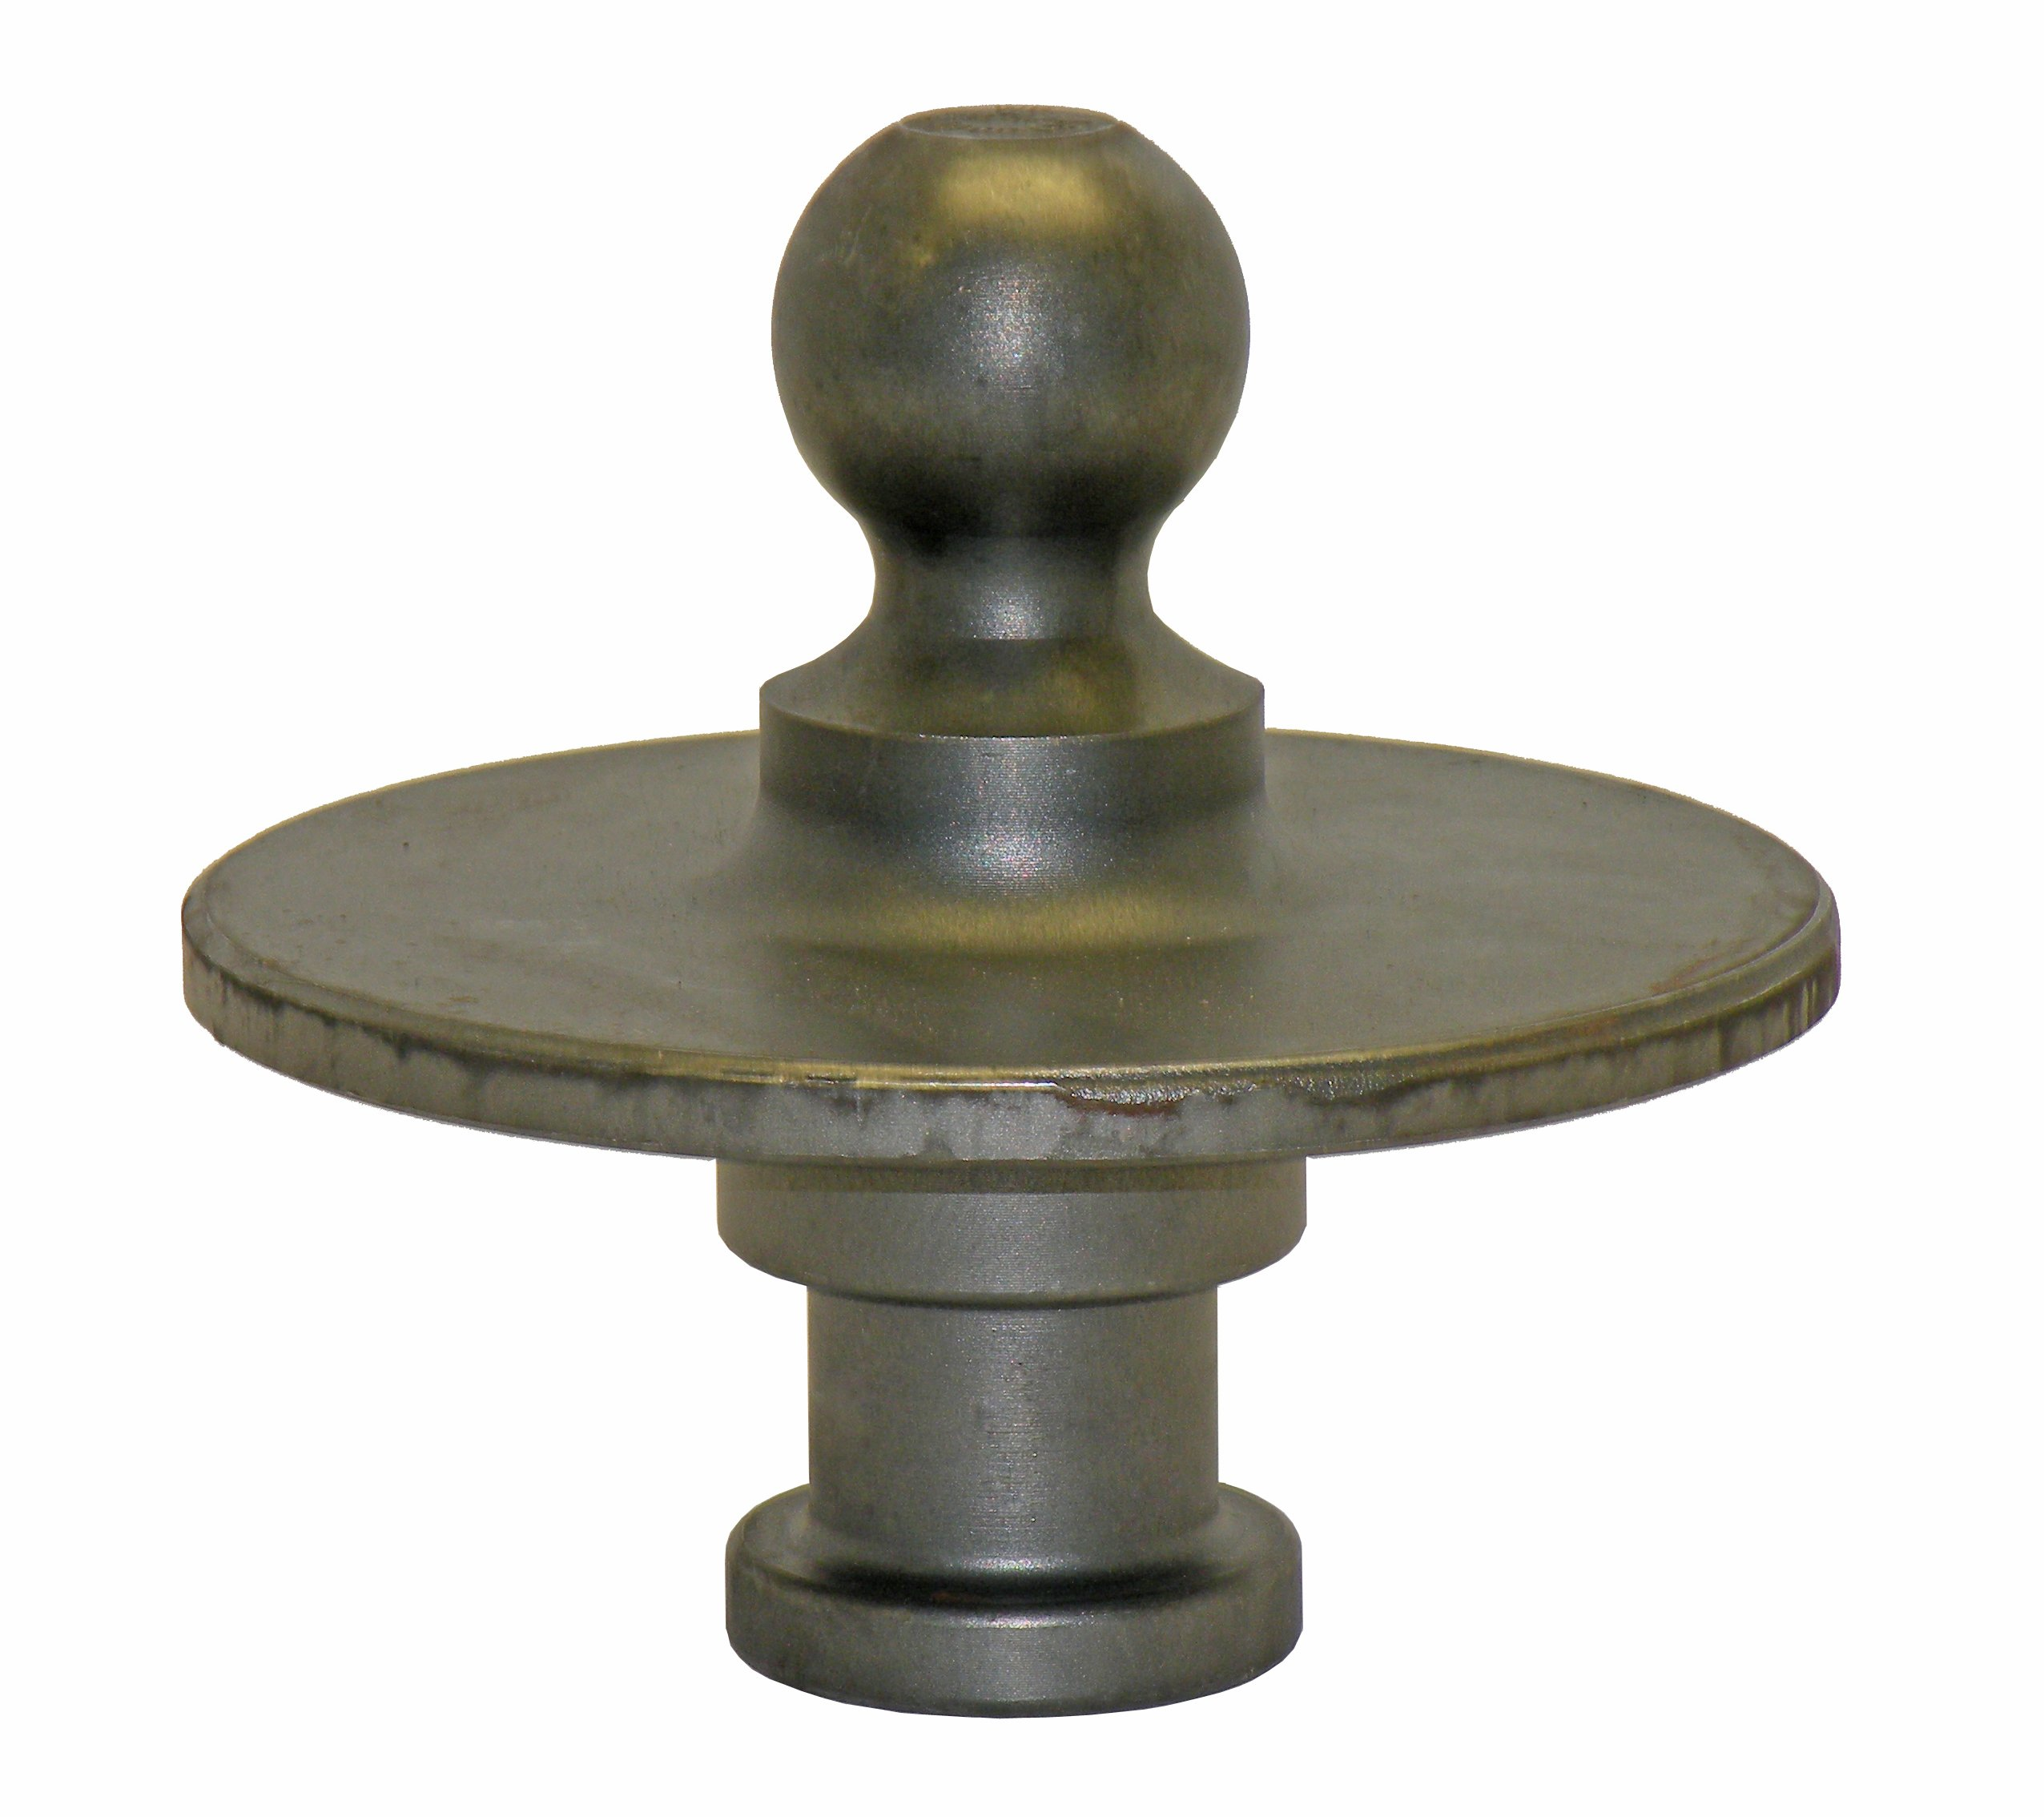 Wallace Forge Kingpin to Gooseneck Ball Adapter - Made in U.S.A. by Wallace Forge